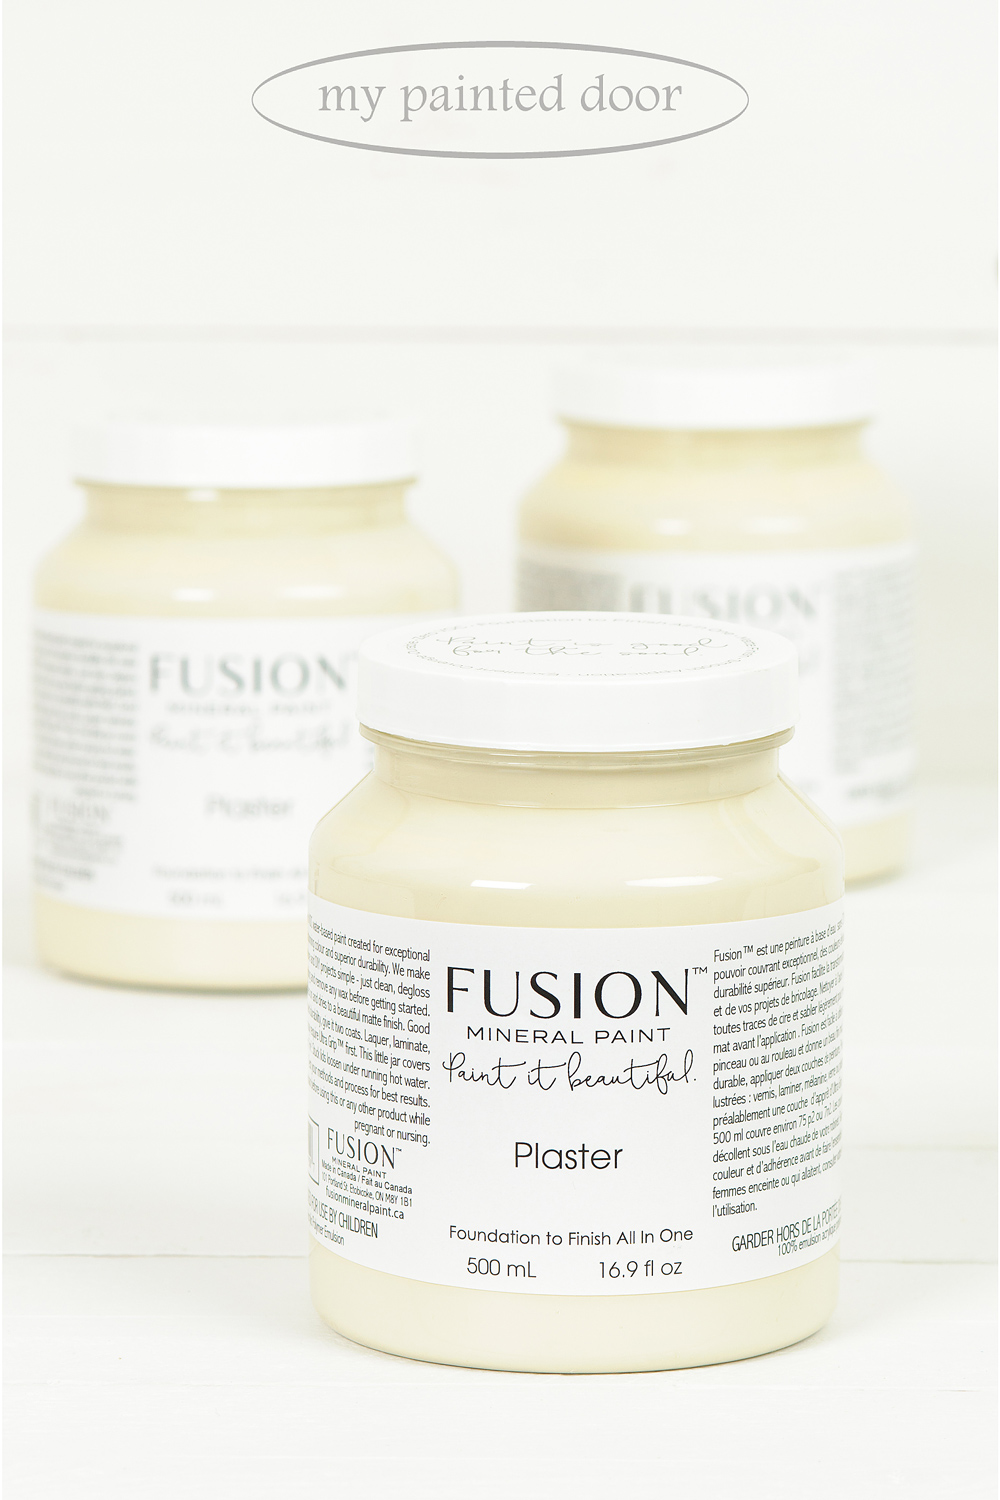 Plaster ▪ A generously soft sand, not too white, not quite beige. A beautiful neutral for anywhere in your home. Fusion Mineral Paint available at My Painted Door (.com)